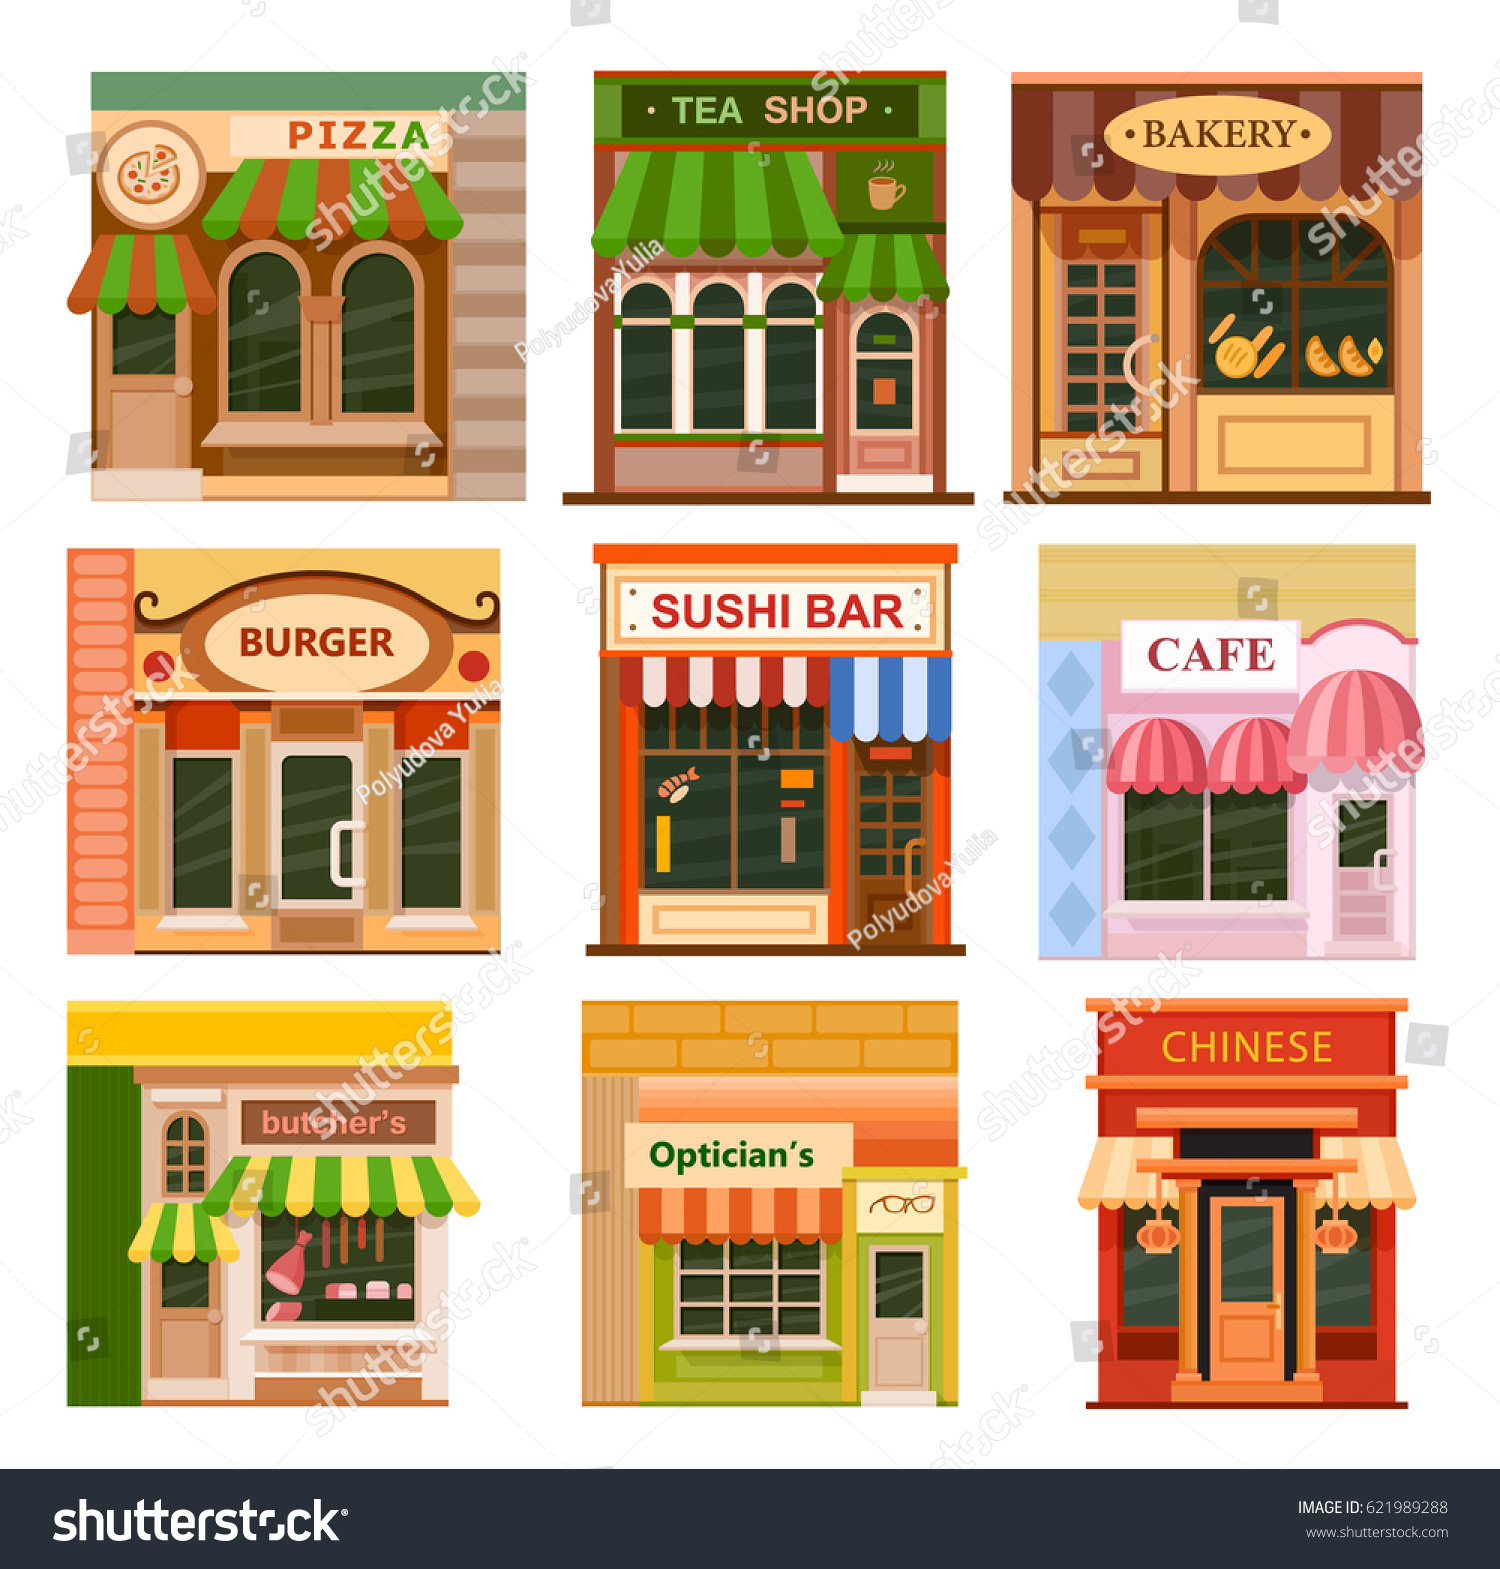 Fancy restaurant buildings clip art - Flat Style Cafe Restaurant Shop Store Little Tiny Fancy Icon Set Chinese Sushi Bar